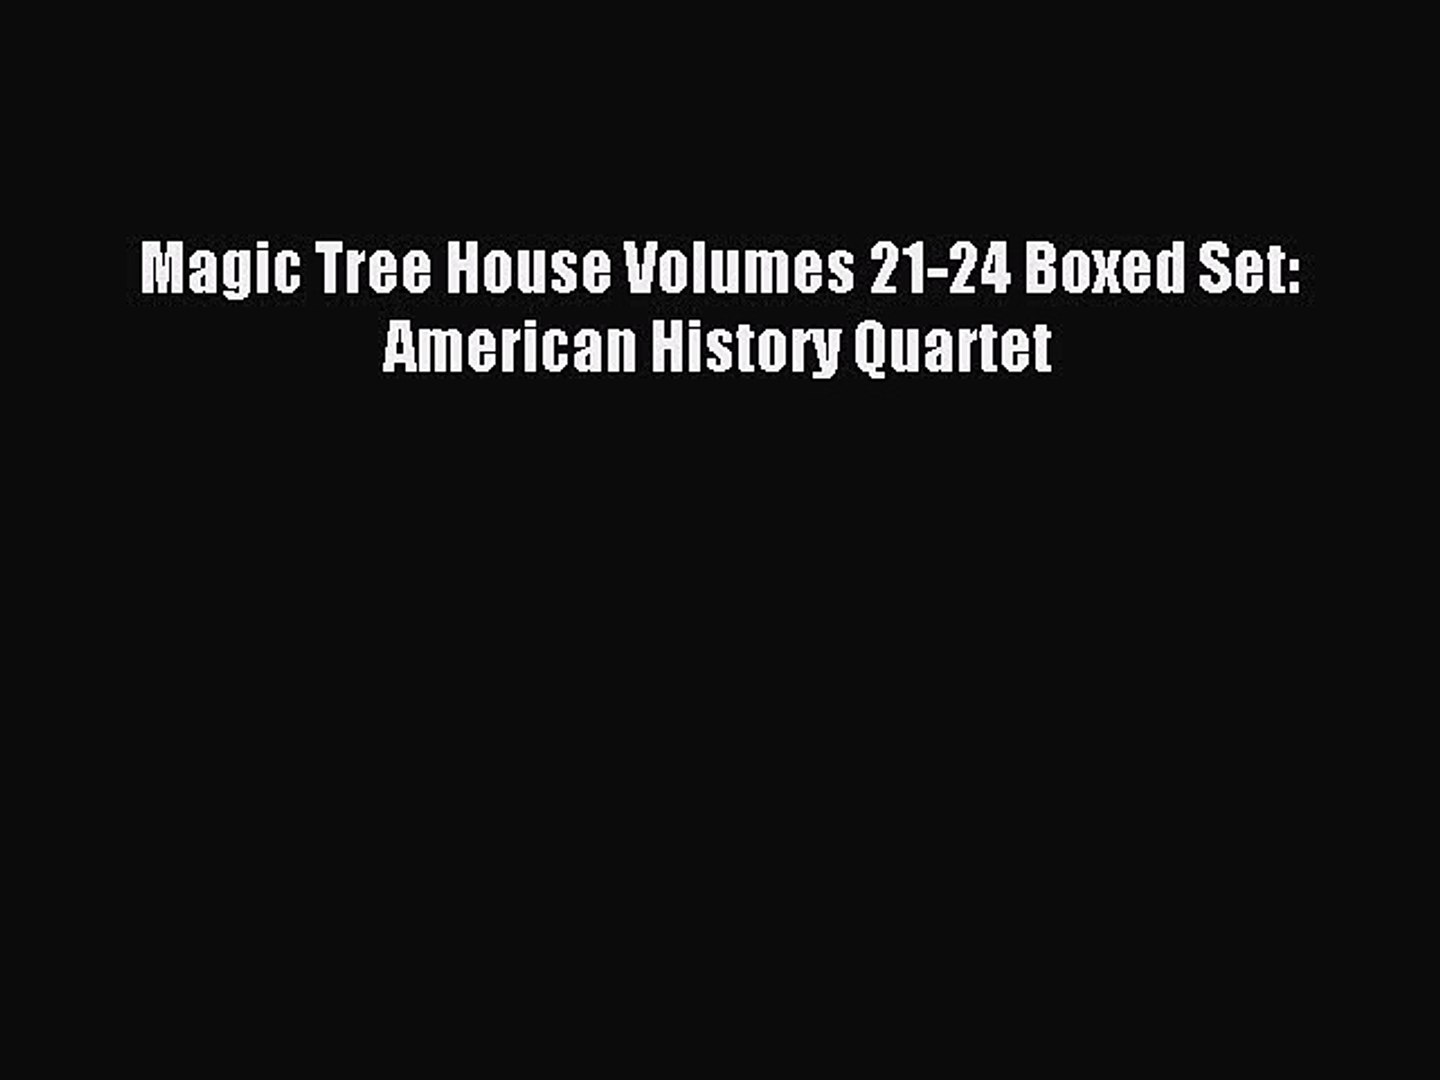 (PDF Download) Magic Tree House Volumes 21-24 Boxed Set: American History Quartet Read Online